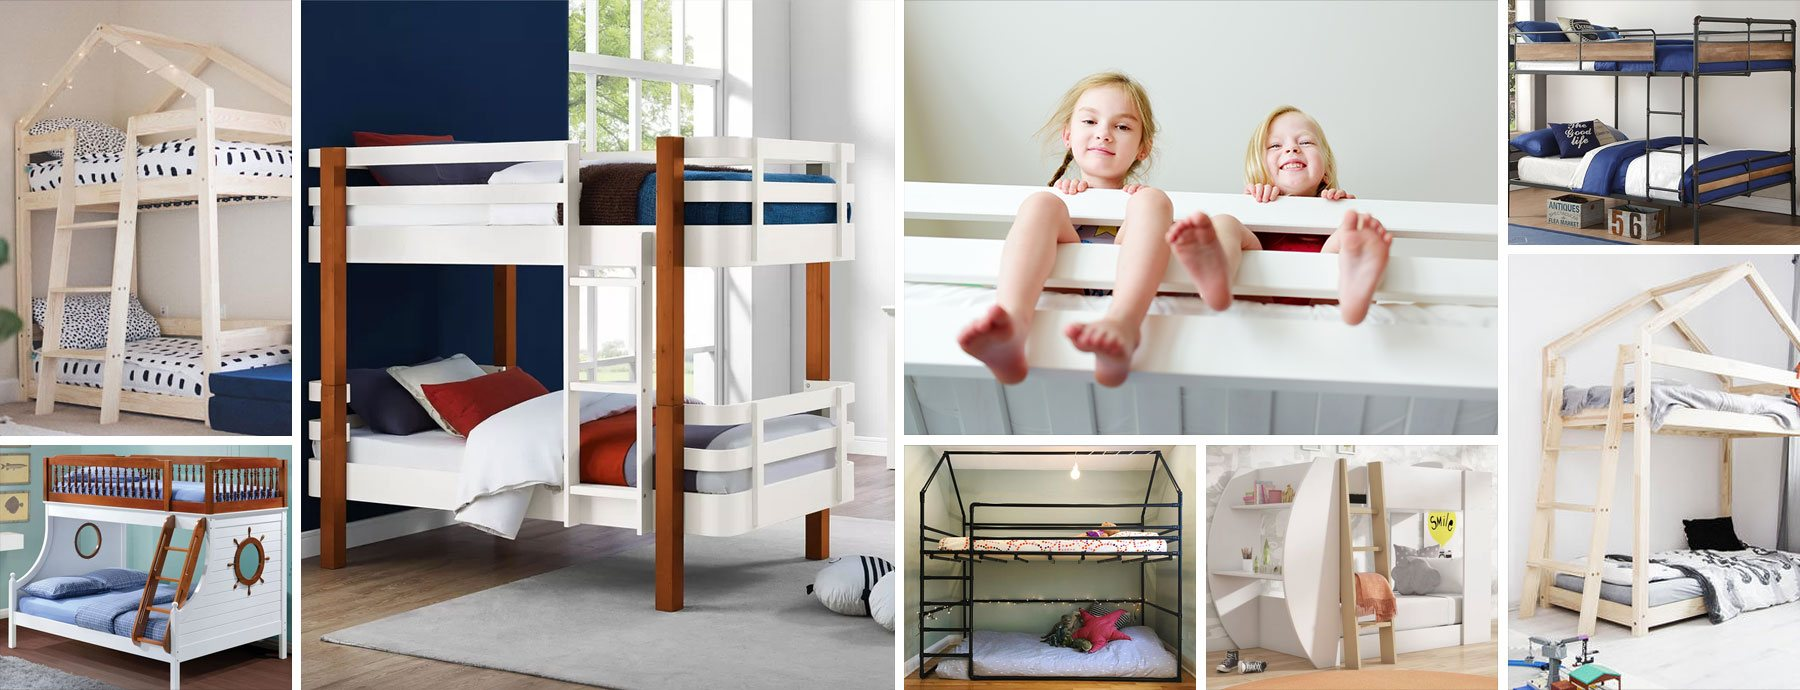 Cheap Kids Beds Online 20 Best Bunk Beds To Buy Online Buying Guide 2019